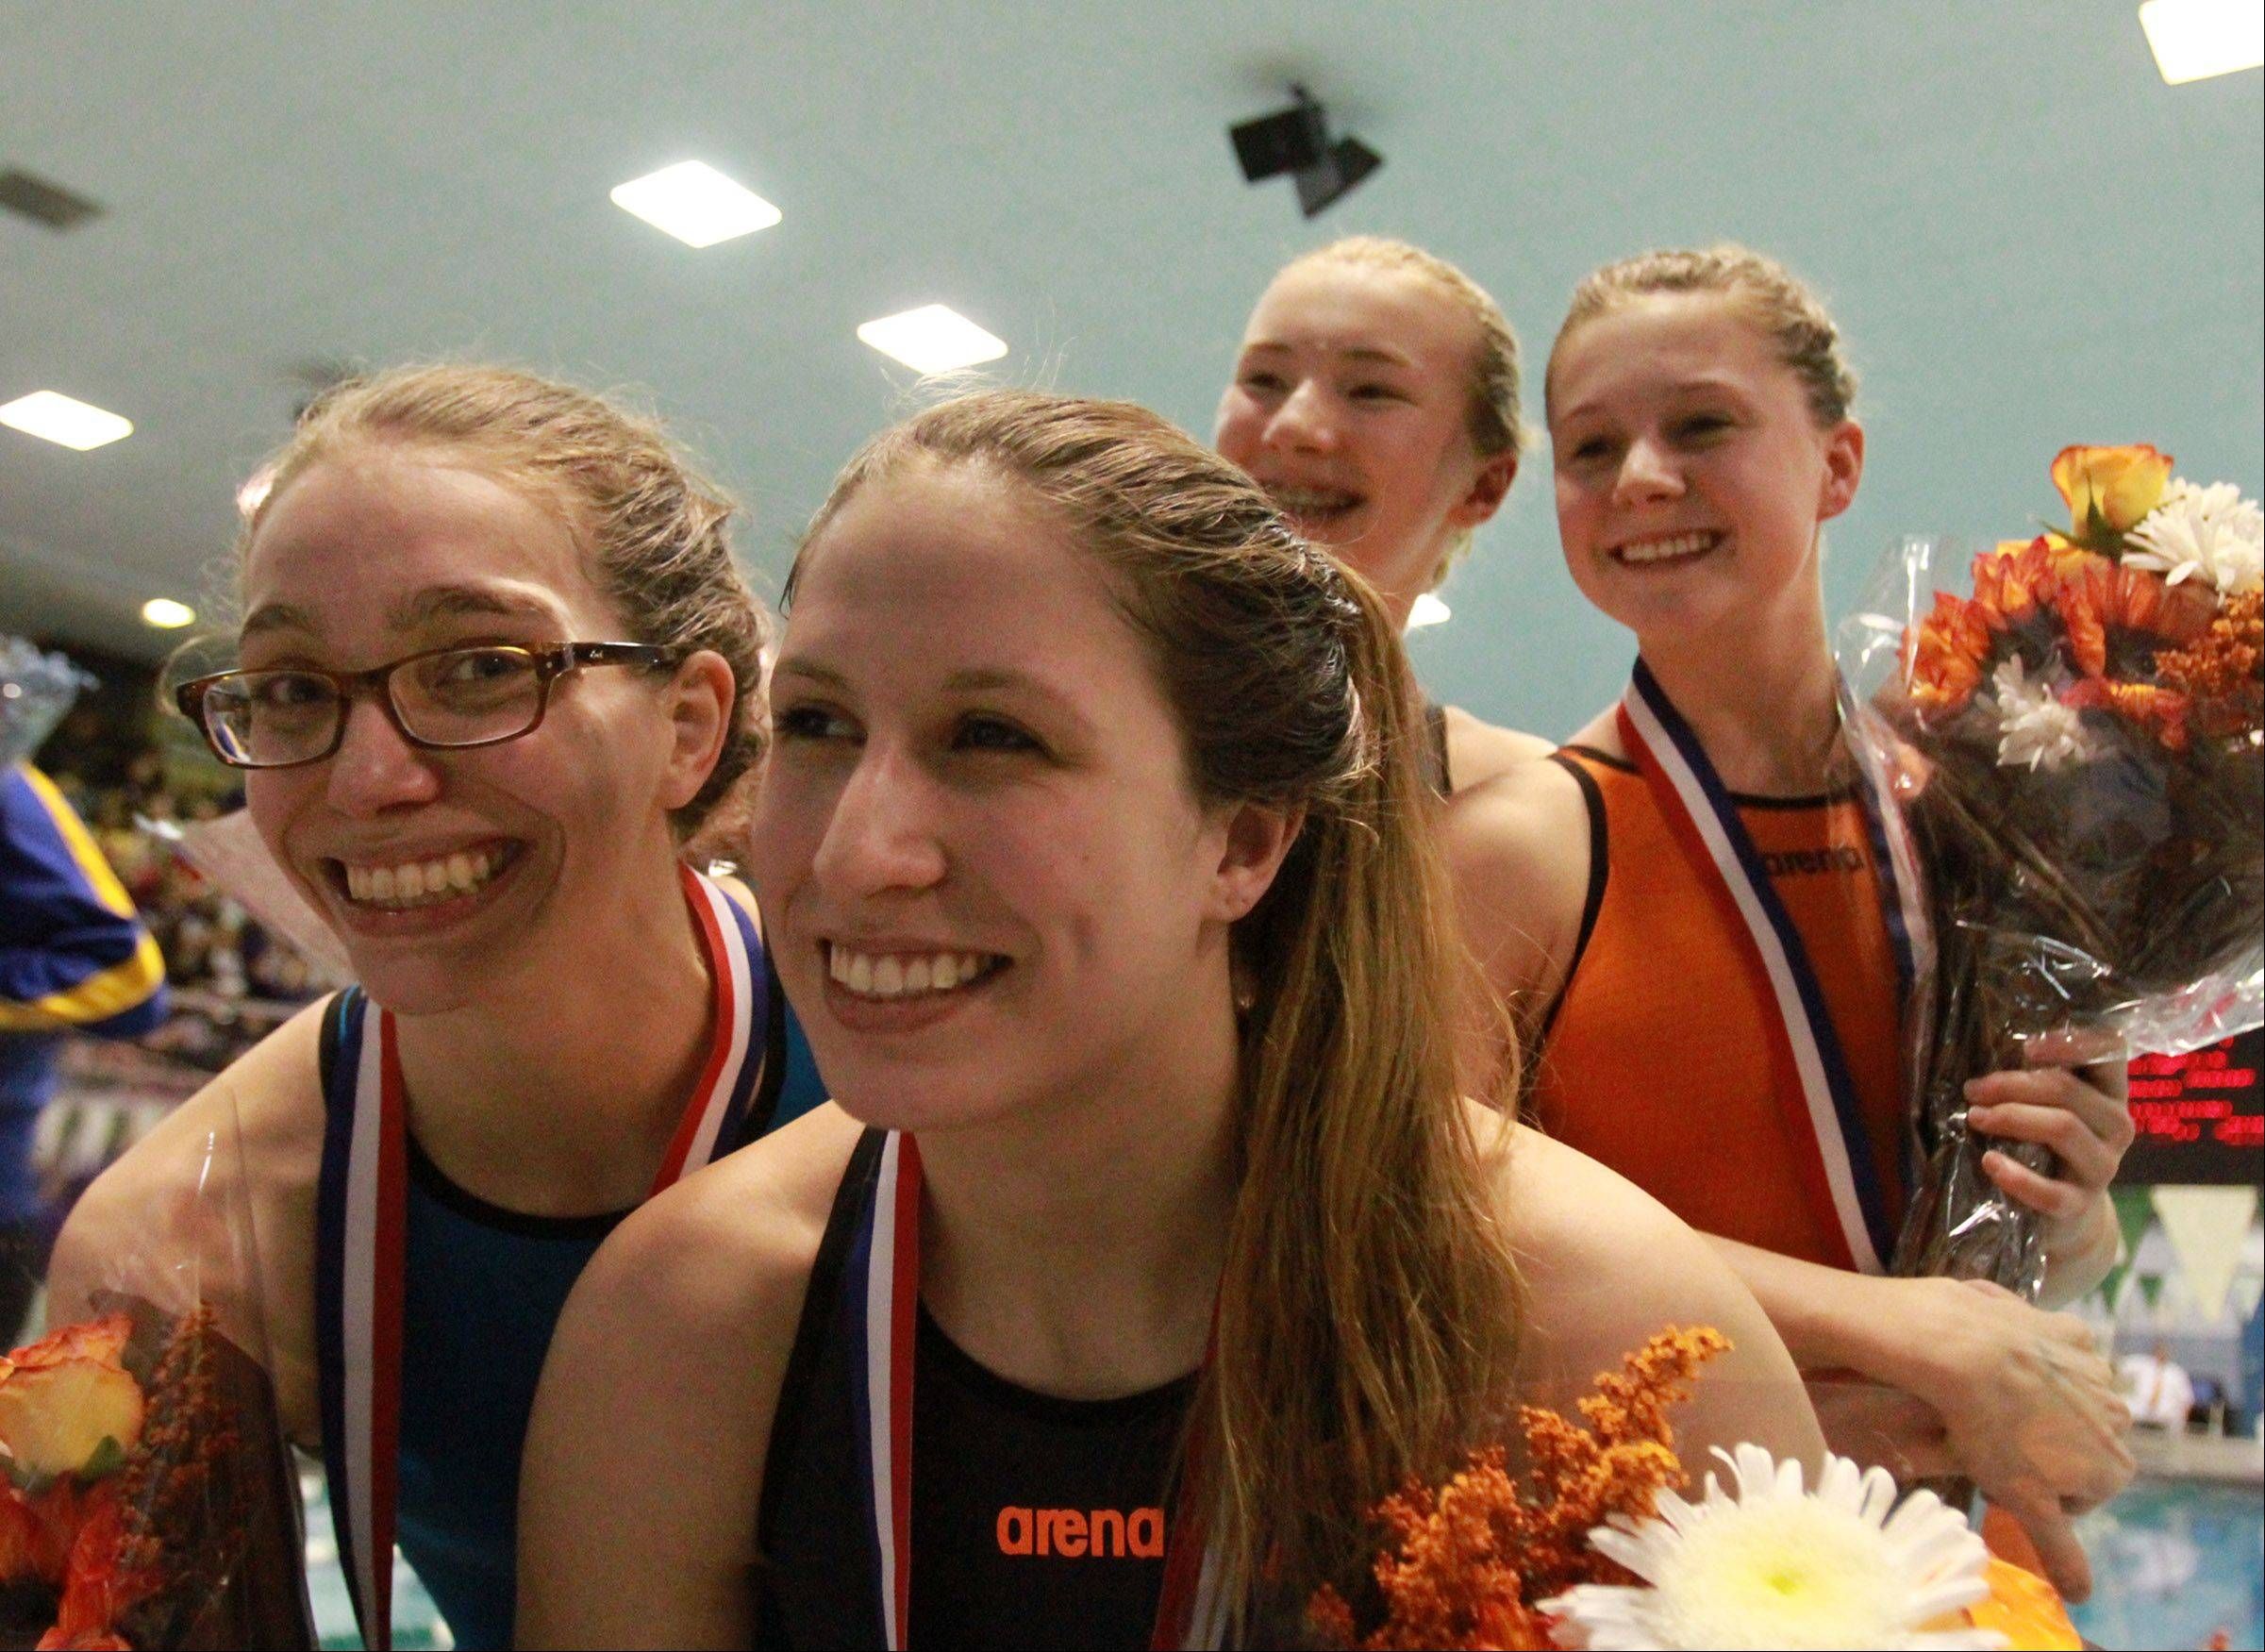 Libertyville's Meredith Robbins, Staci Herchenbach, Sophia Lex, and Macey Neubauer placed ninth in 200 medley relay at the girls state swimming finals on Saturday in Winnetka.